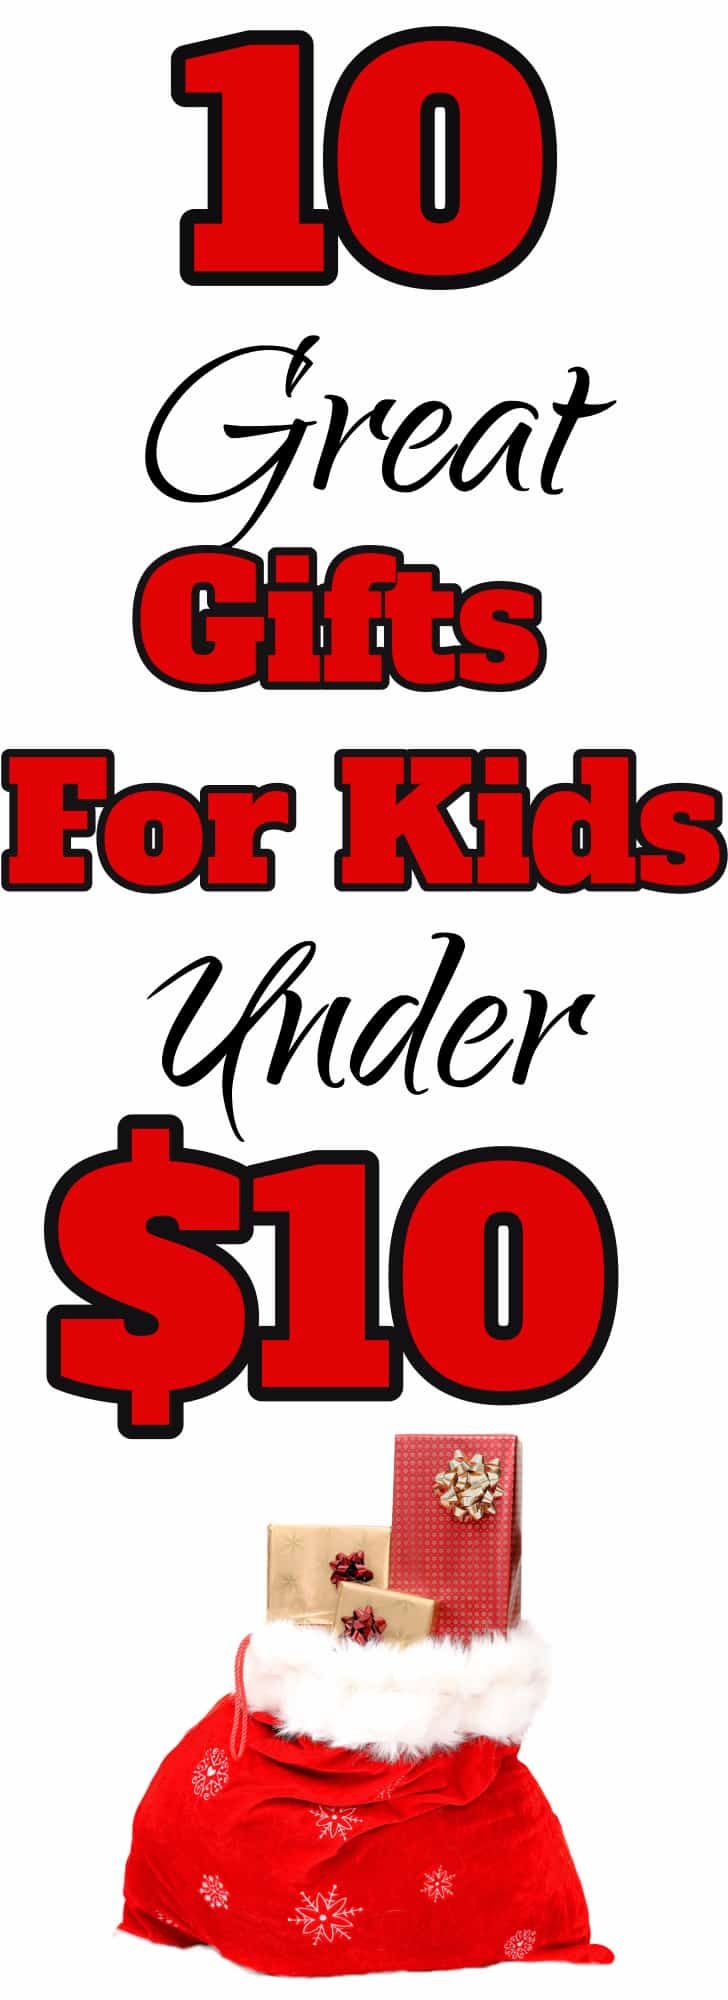 Childrens christmas gifts under $10